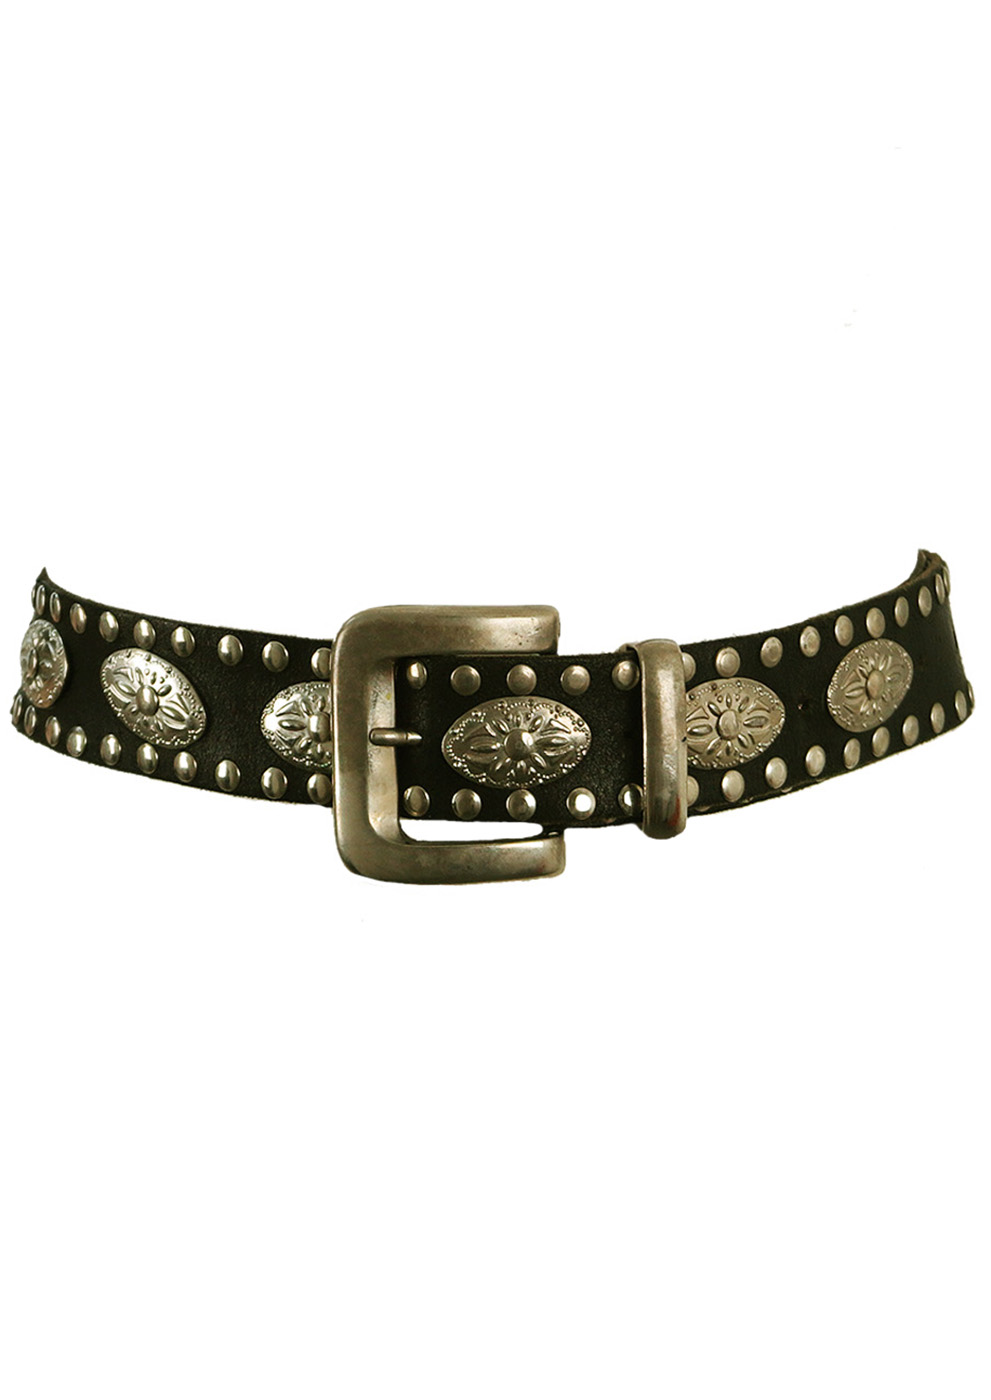 Black Leather Belt With Silver Stud Edging Decorative